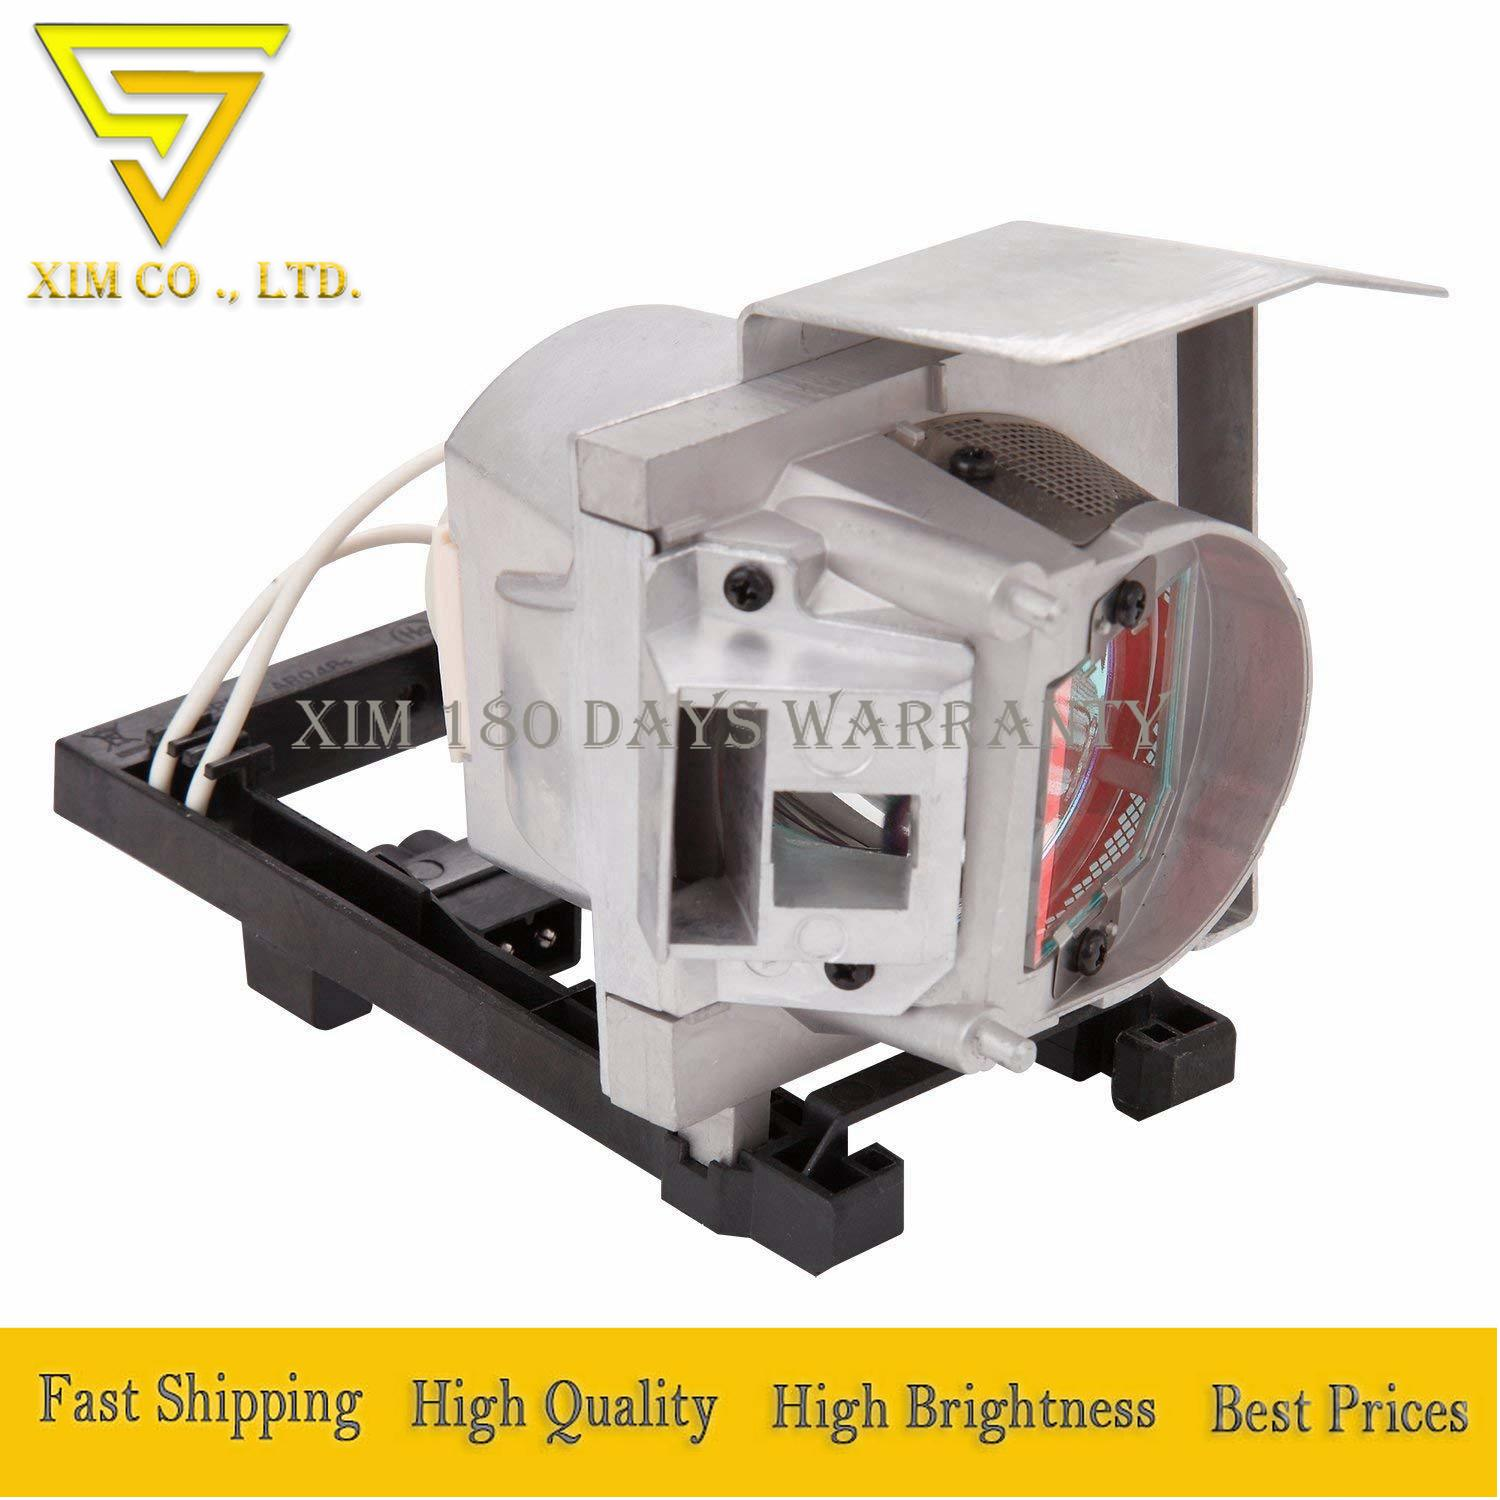 BL-FP280I/SP.8UP01GC01 High Quality Compatible Projector Lamp For OPTOMA RW775UTi W307UST W307USTi X307UST X307USTi Projectors